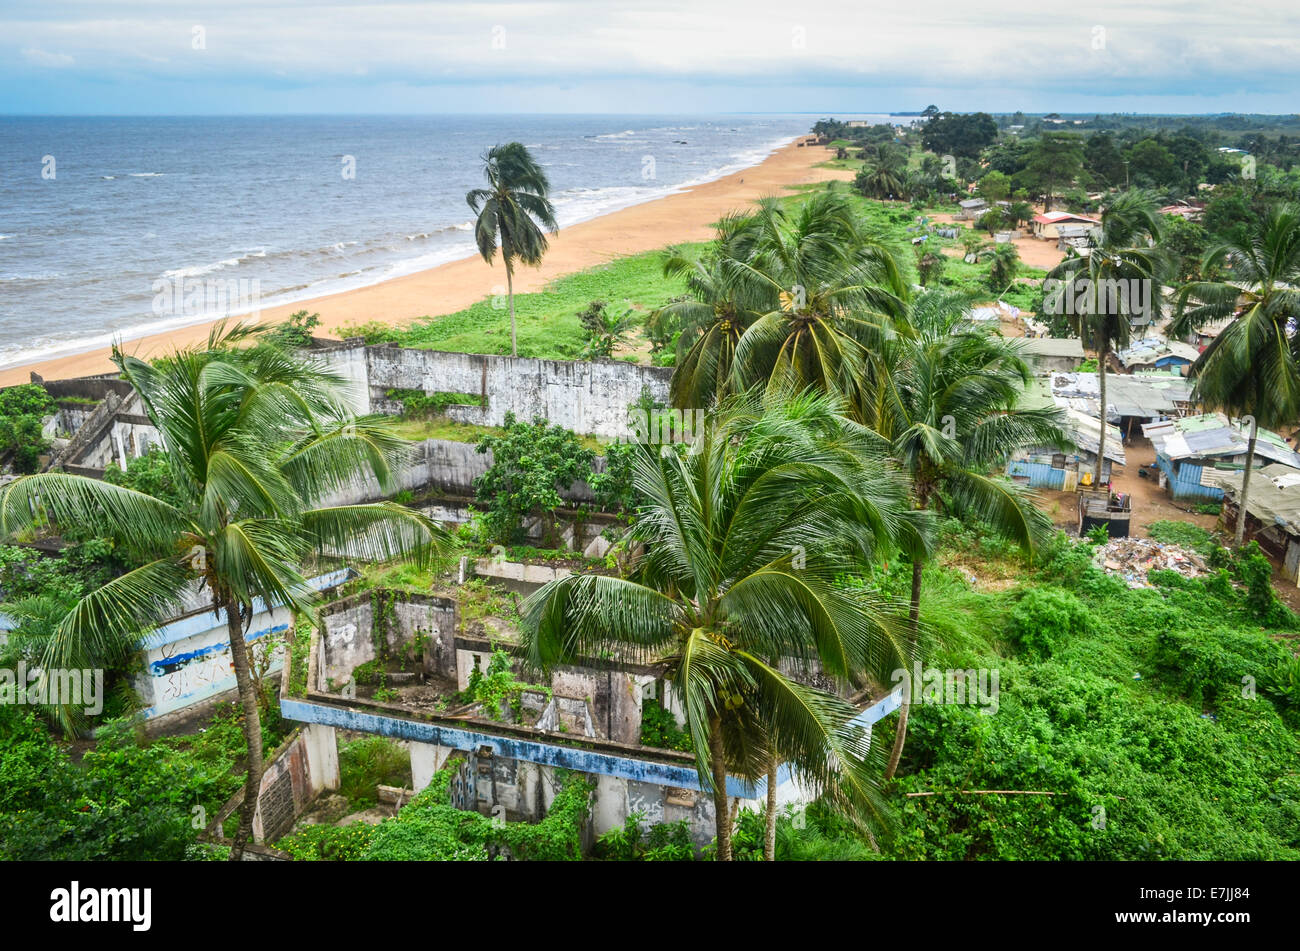 Ruins of the Hotel Africa near the Atlantic ocean in the northern suburbs of Monrovia, Liberia - Stock Image